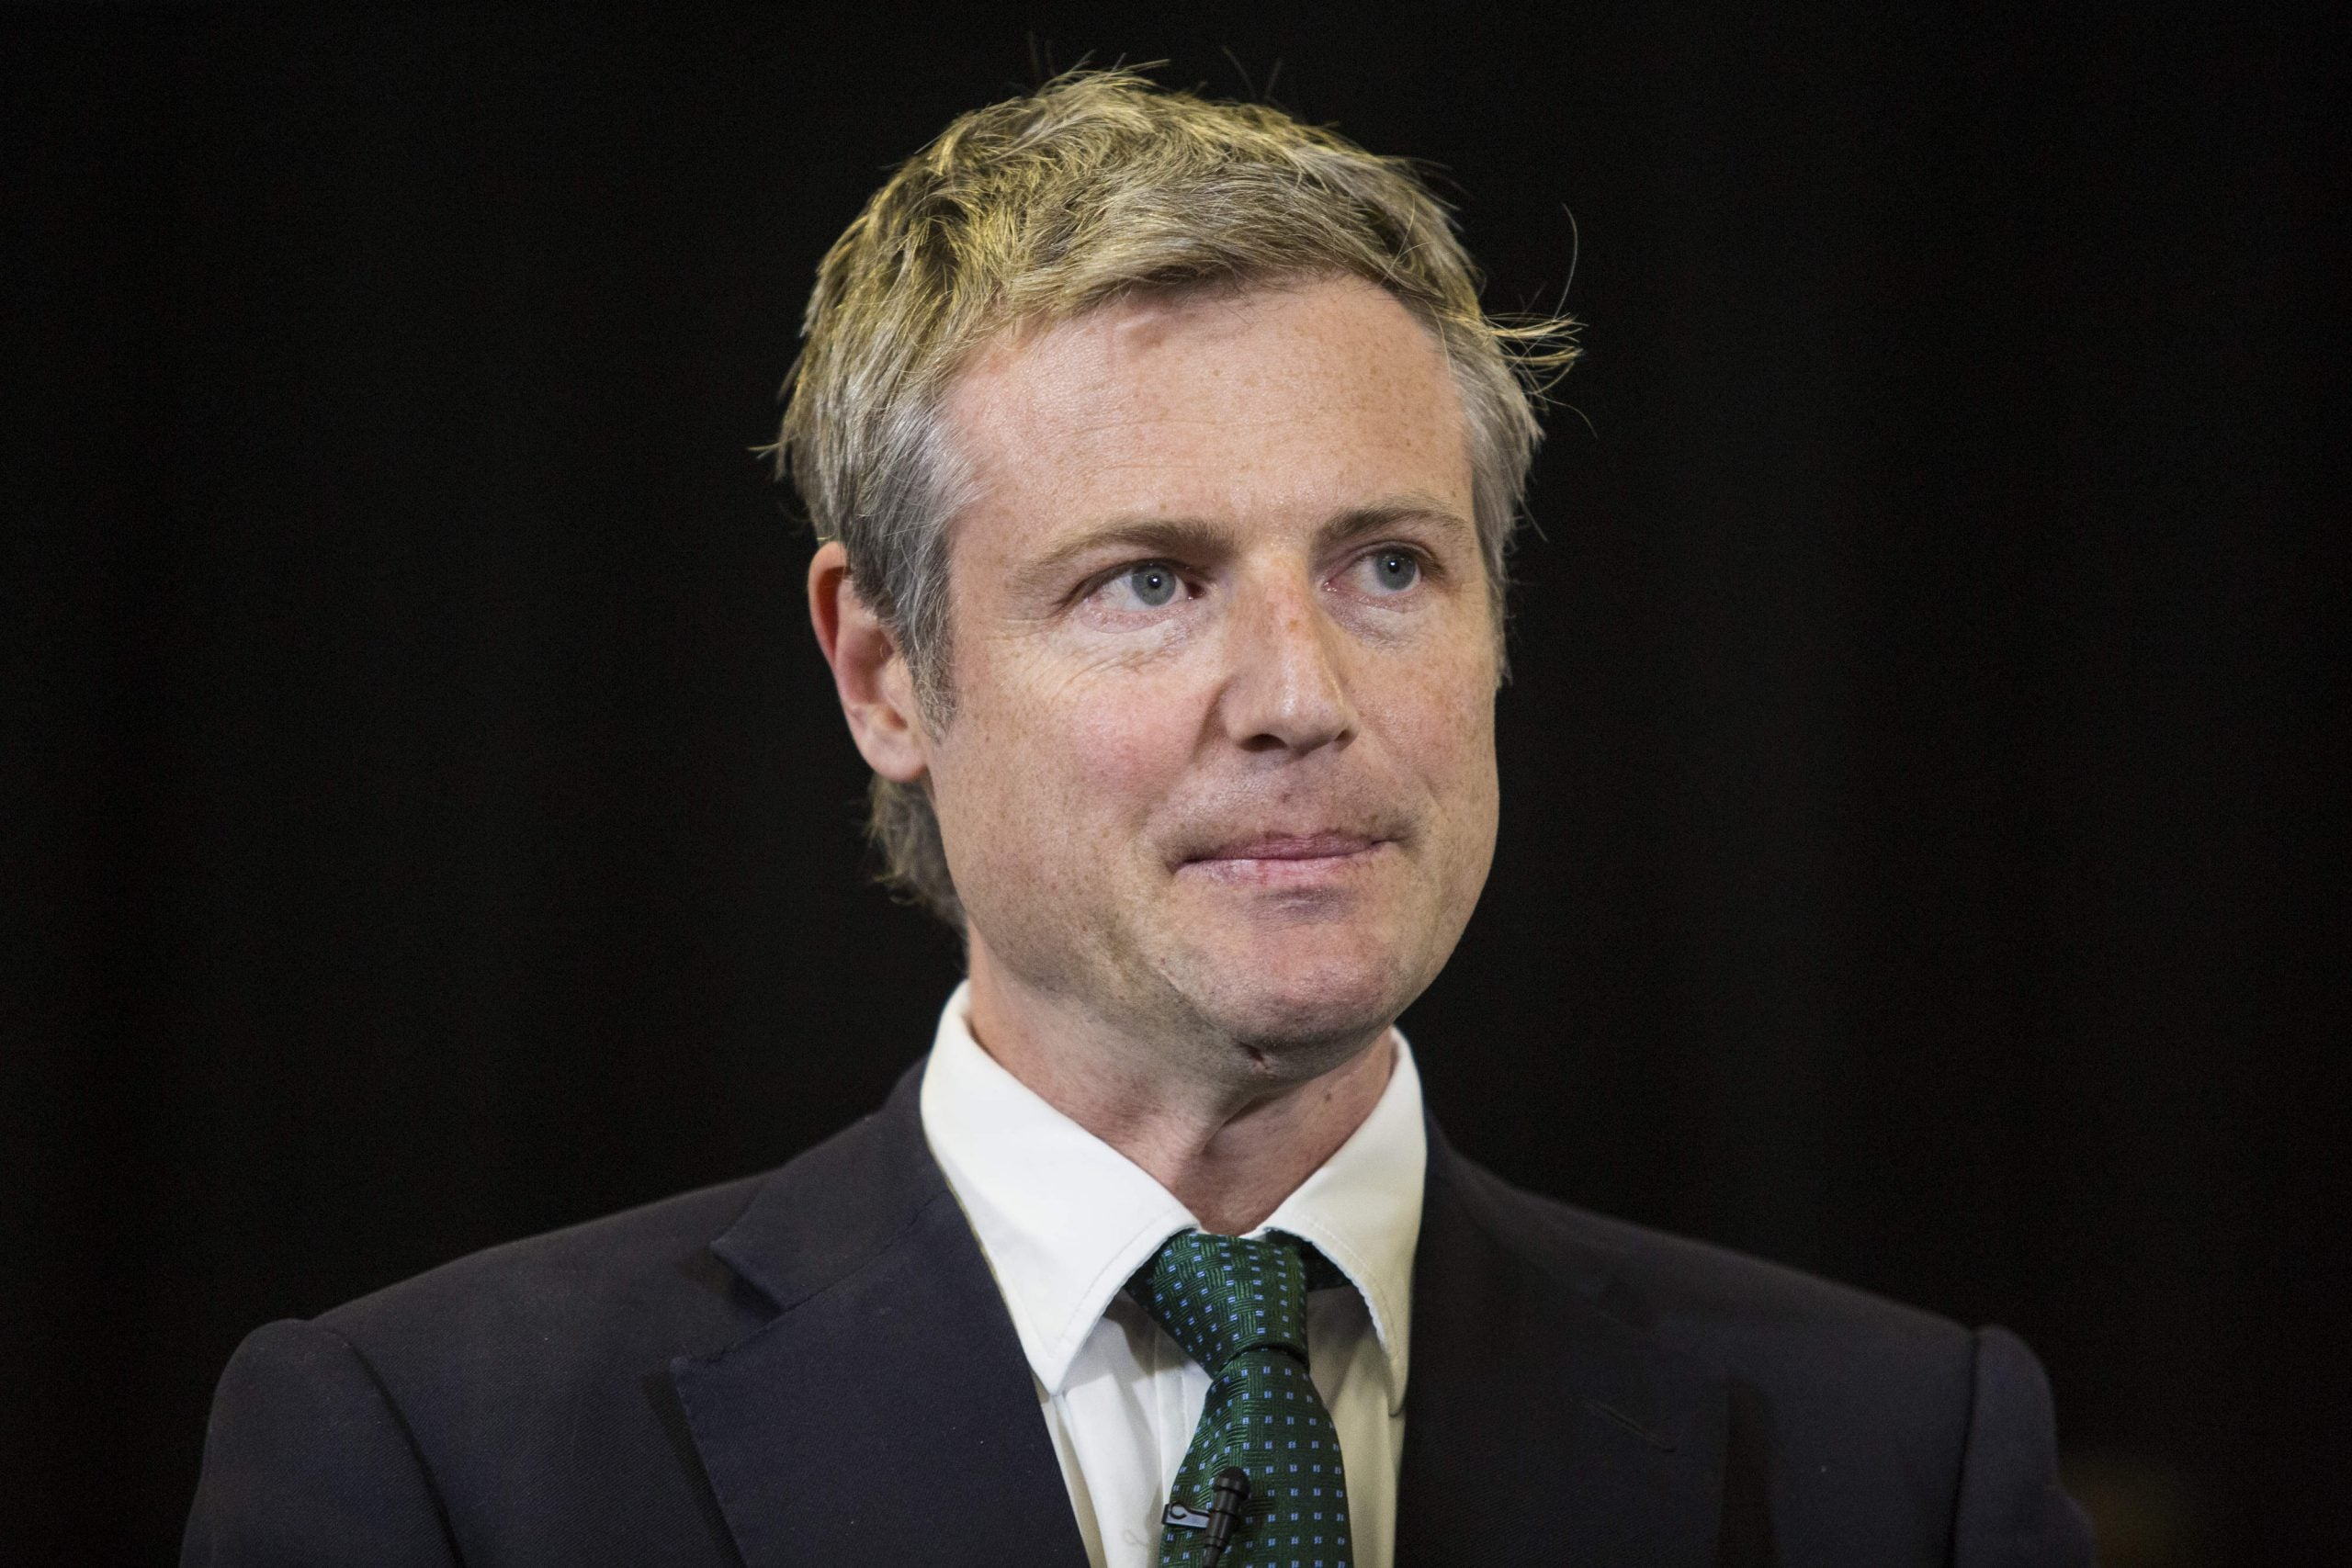 Zac Goldsmith is running a patronising and poisonous campaign